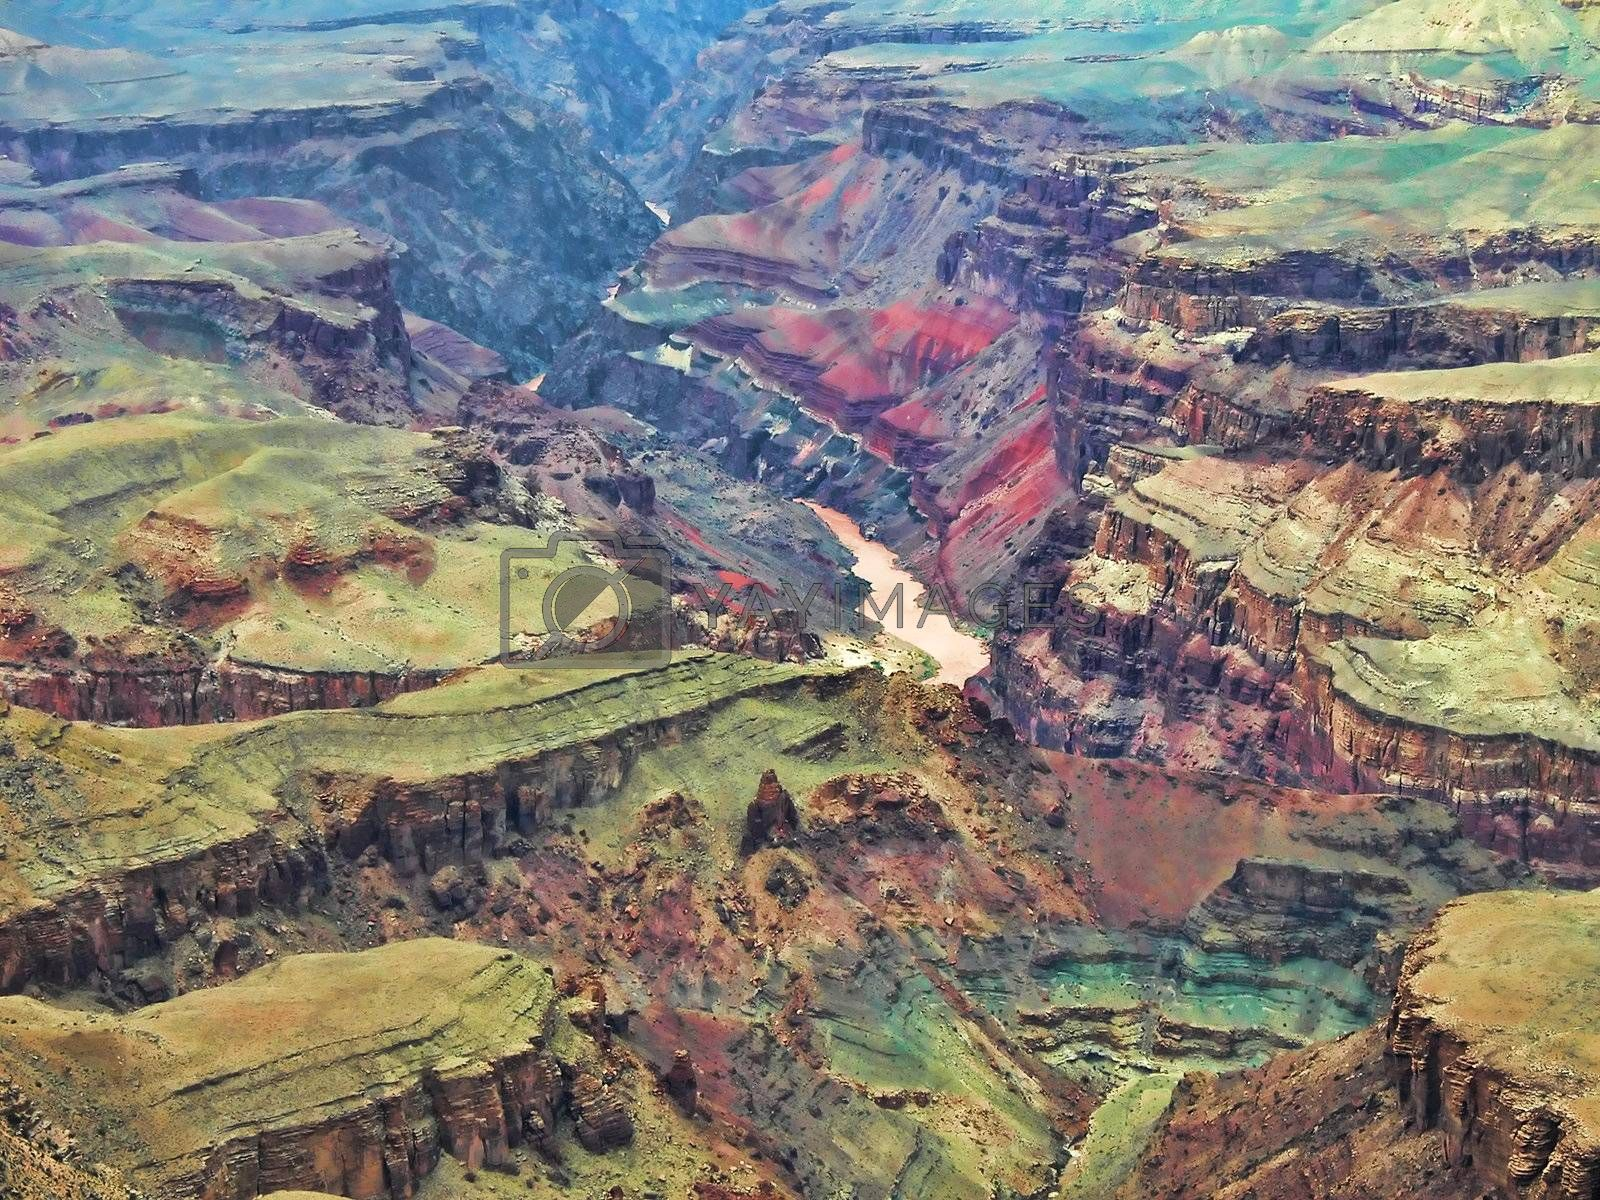 Grand Canyon, U.S.A. by jovannig